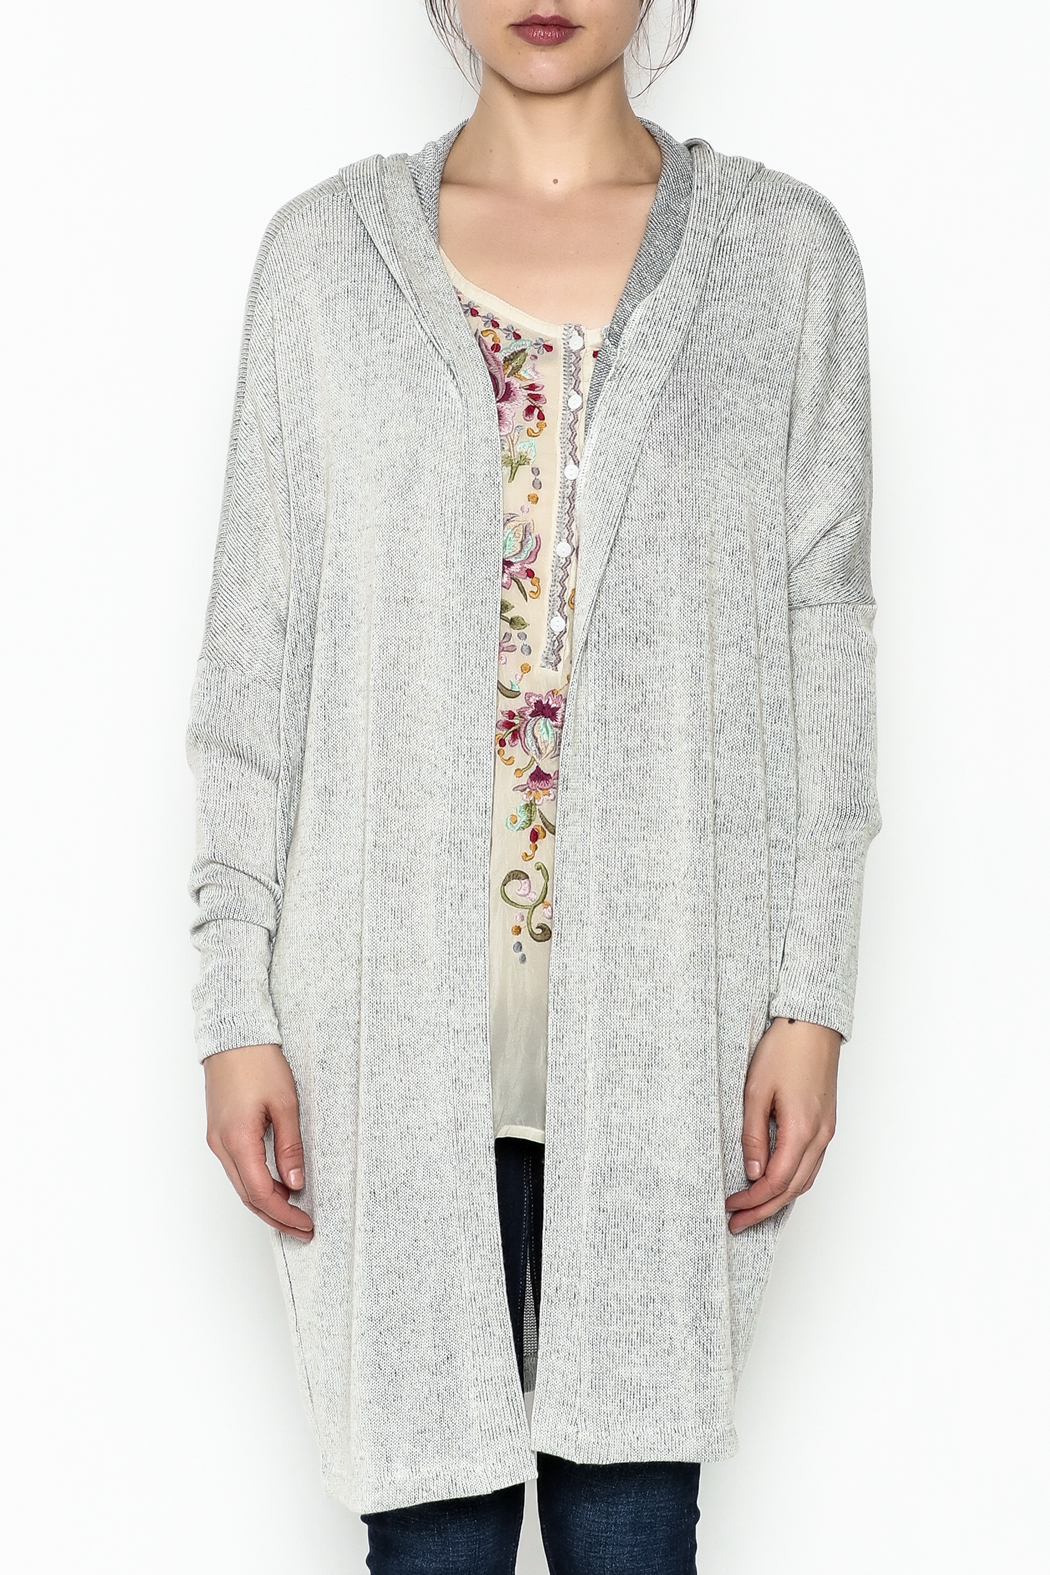 Audrey Hooded Cardigan - Front Full Image